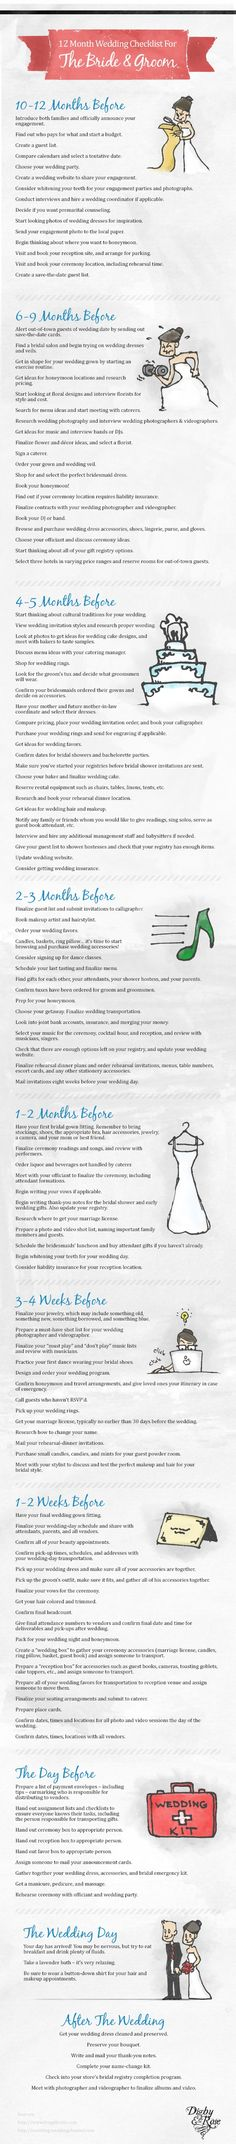 12 month wedding planning checklist: will be helpful